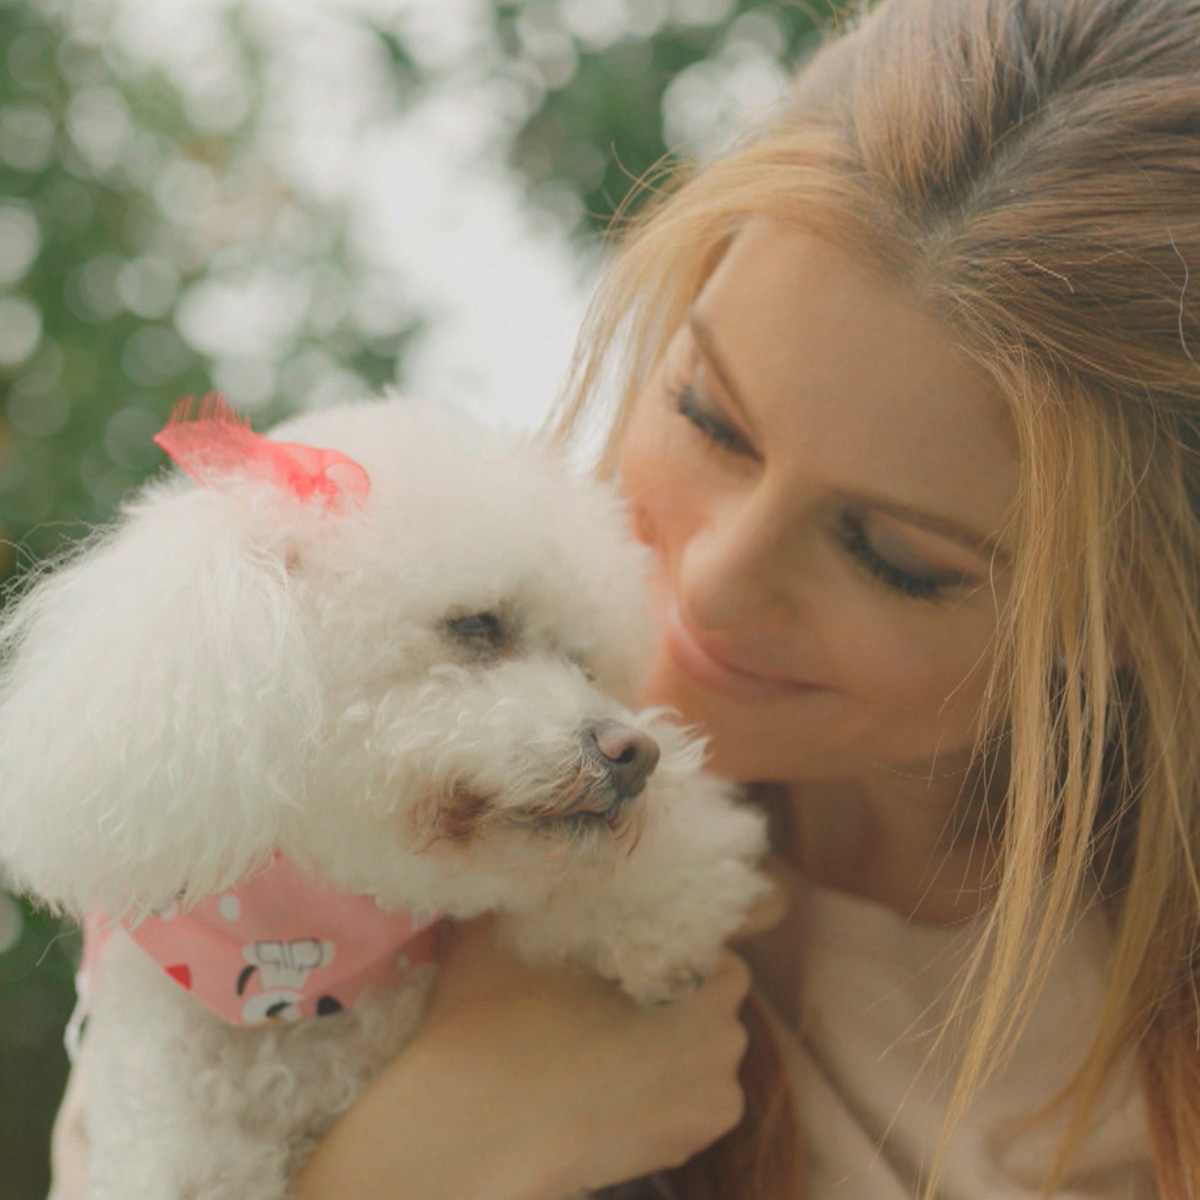 """My dogs are the true stars of our family. They have different personalities, but provide us with their own wonderful versions of warmth and affection,"" said award-winning journalist Maria Menounos."